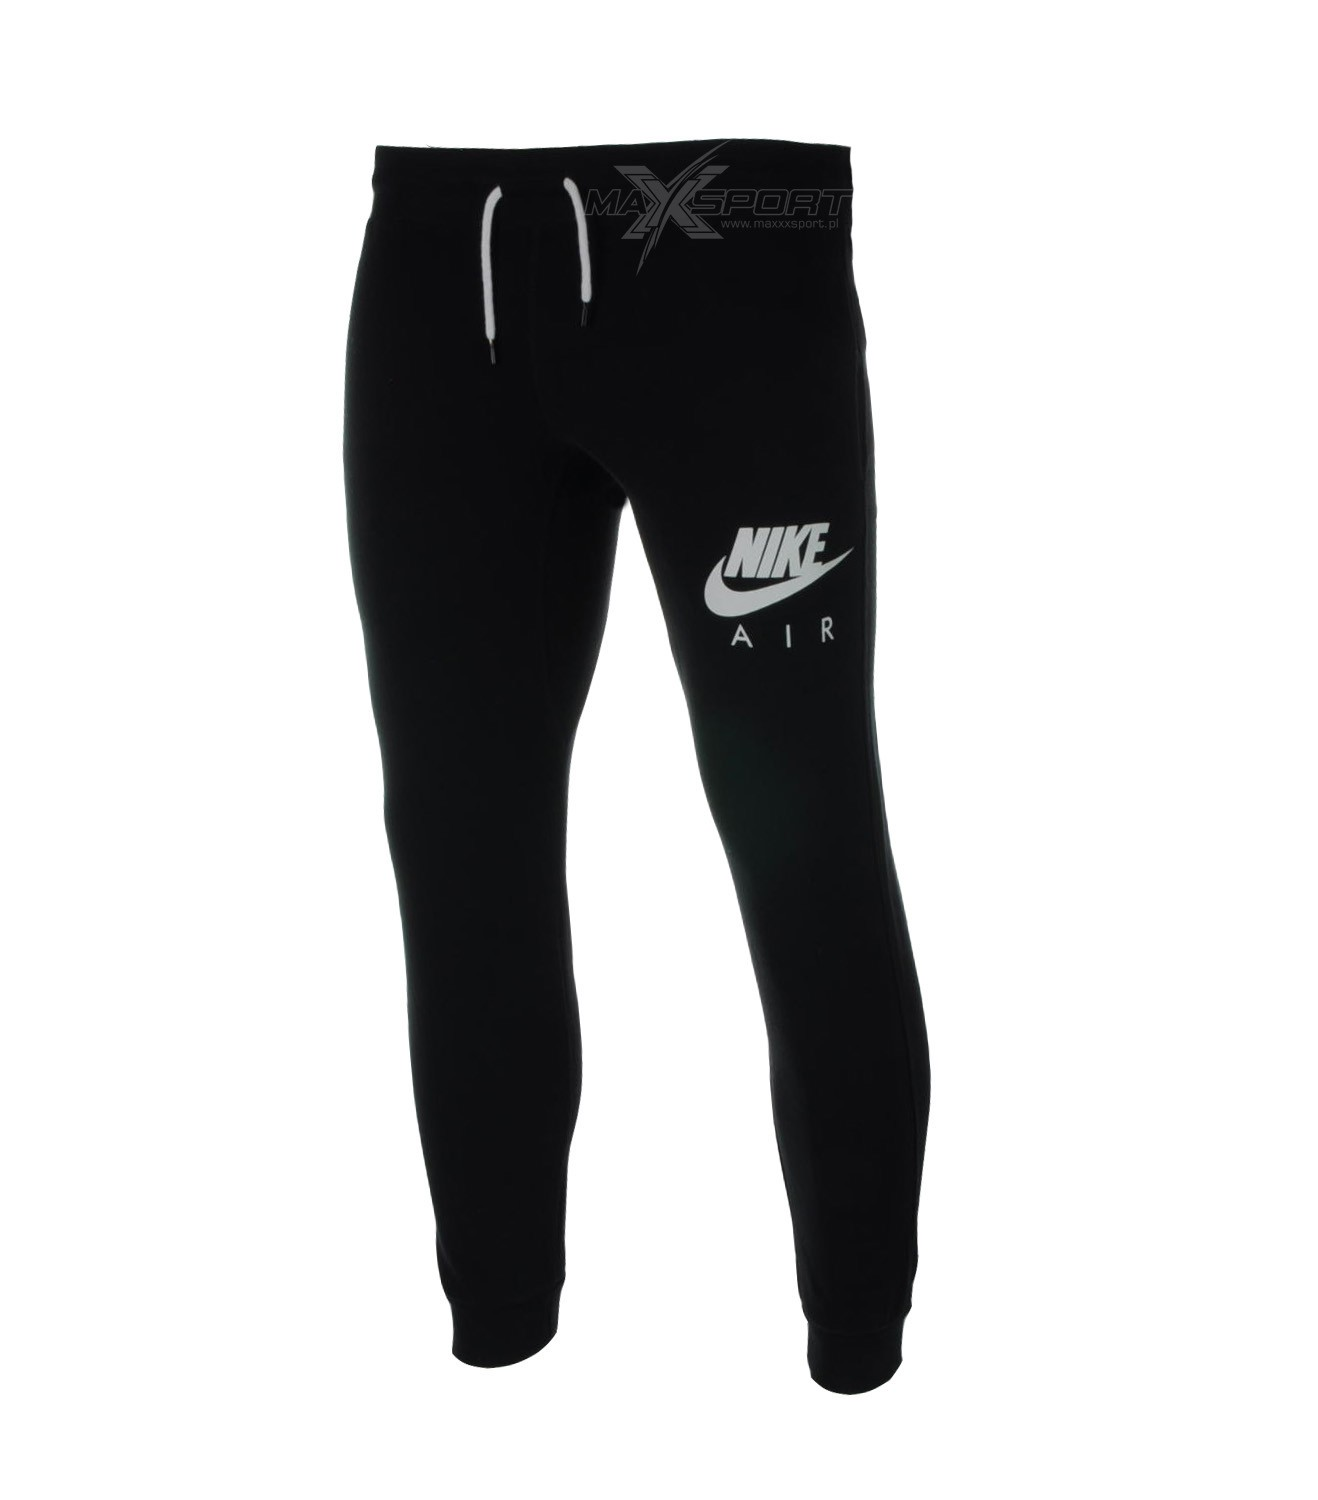 nike air hose herren trainingshose sporthose jogginghose. Black Bedroom Furniture Sets. Home Design Ideas